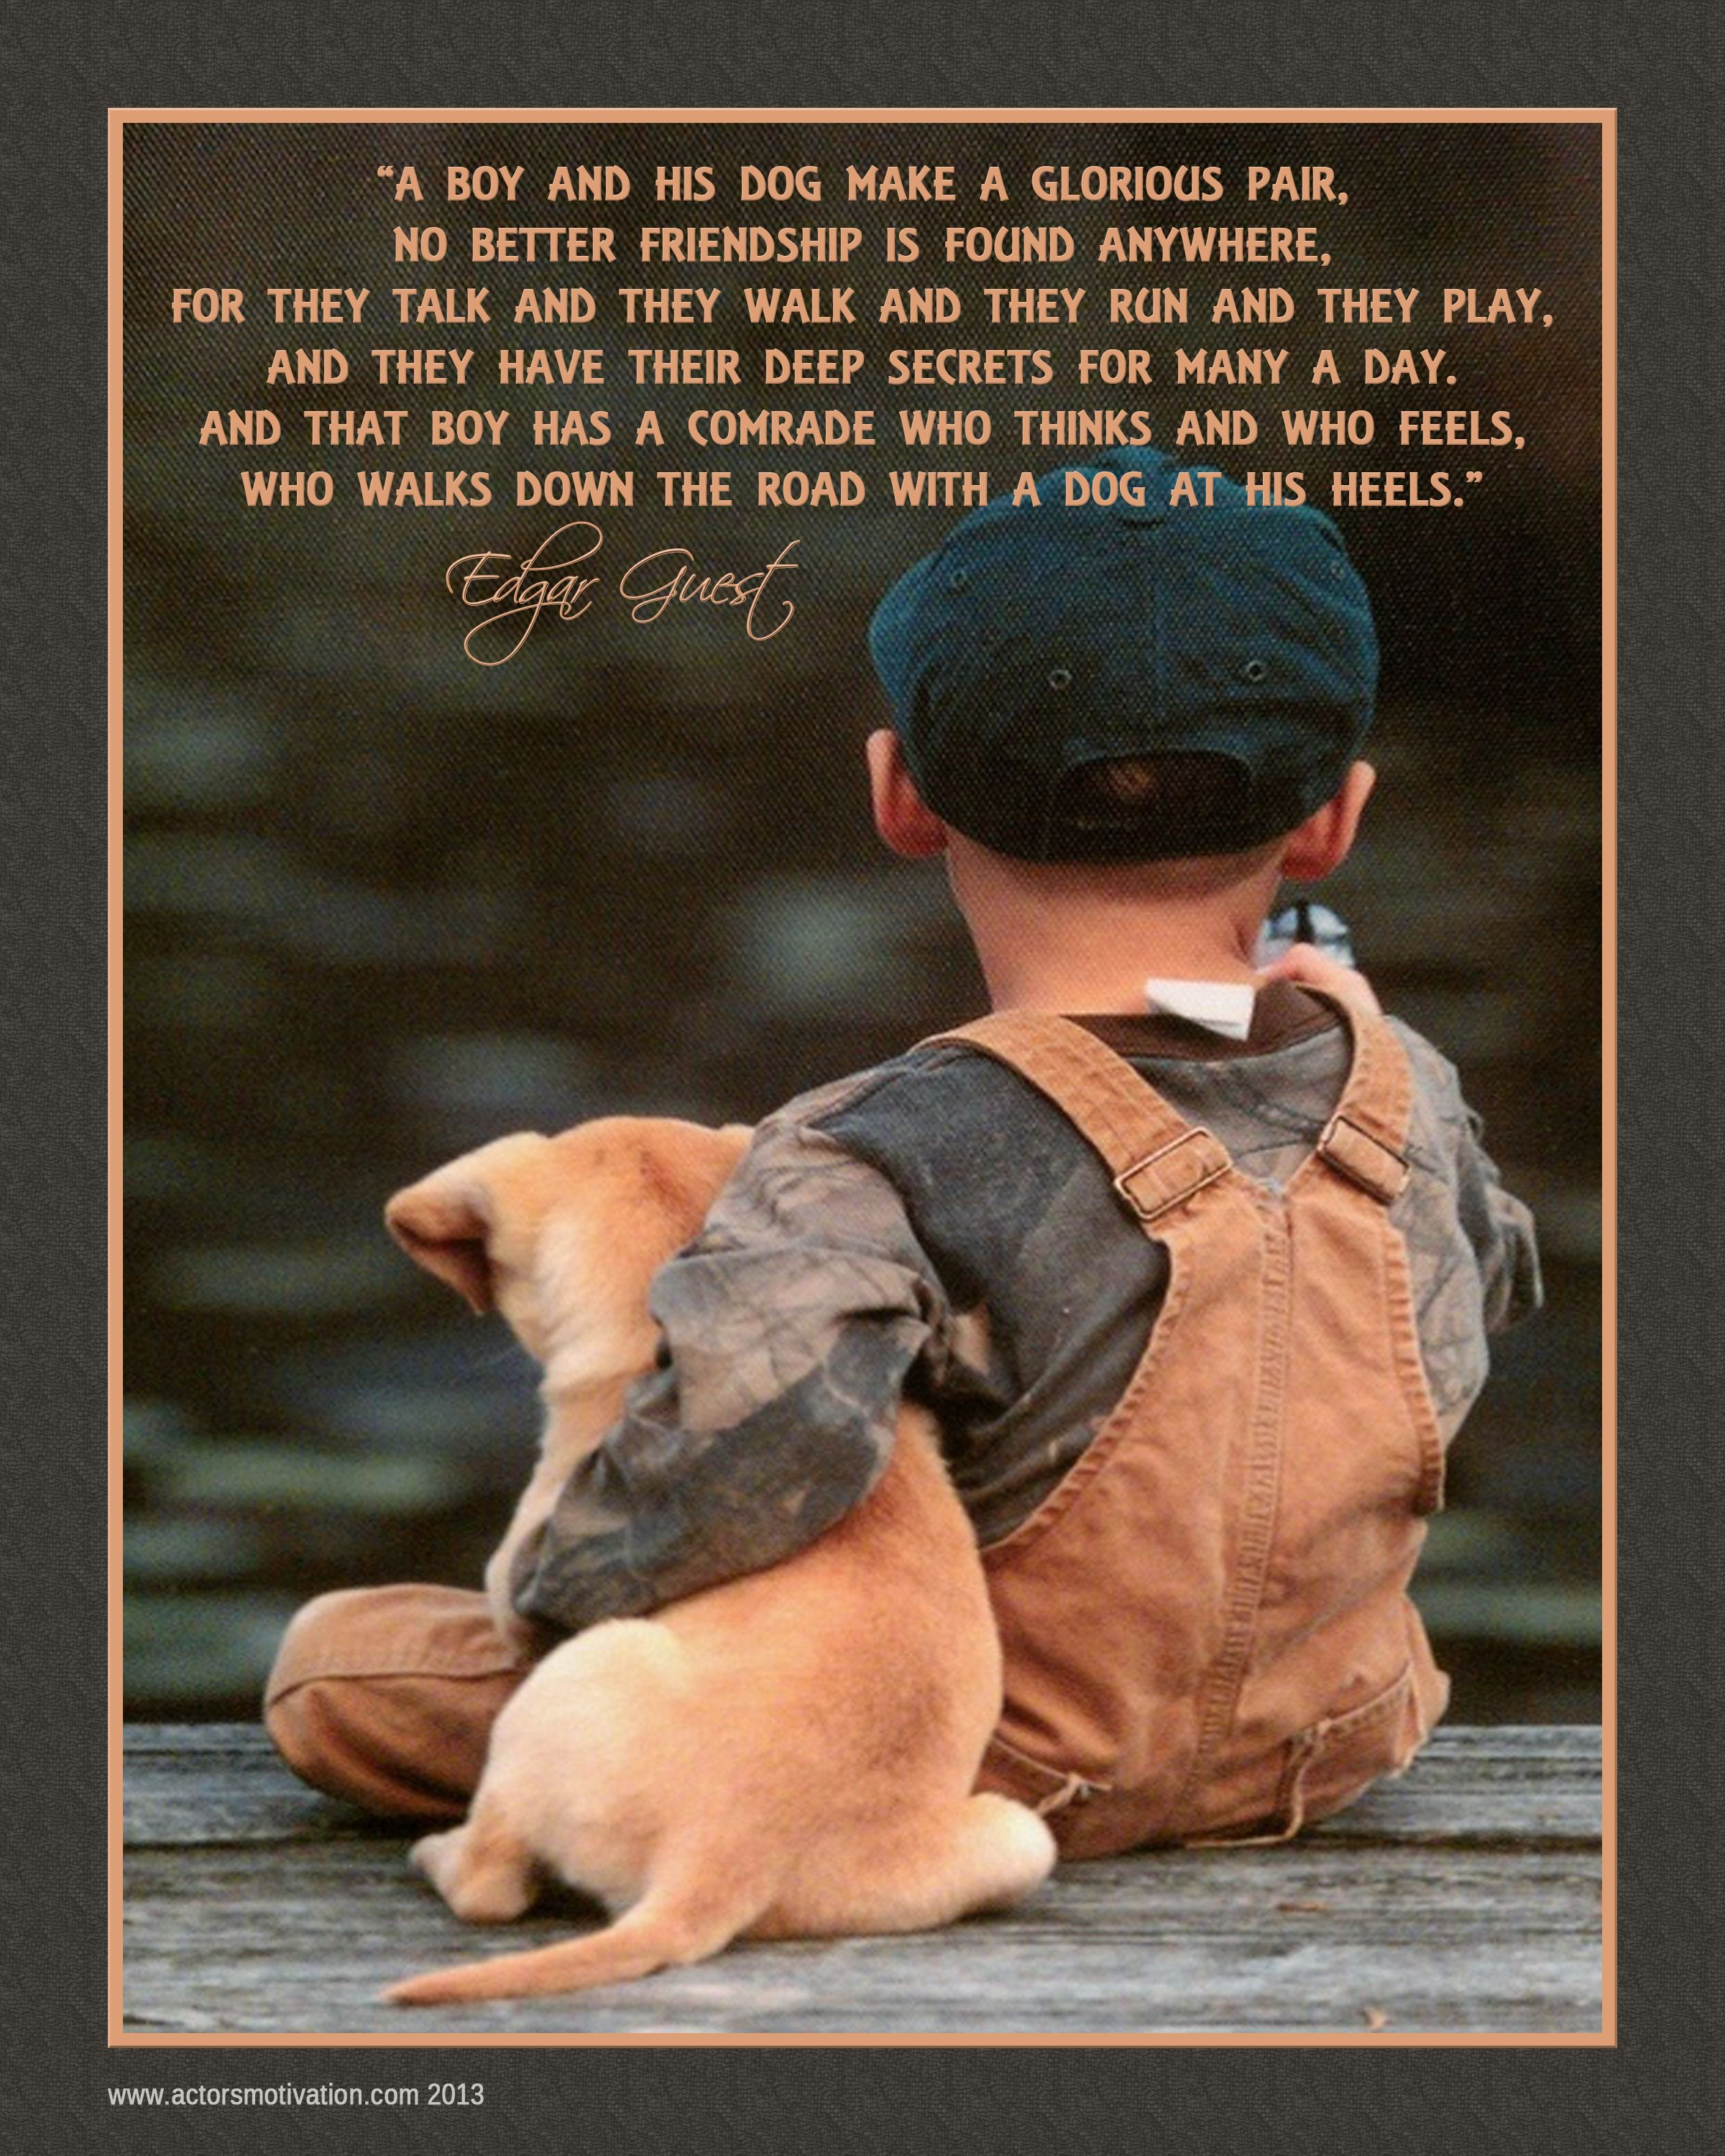 quotes about a boy and his dog quotesgram